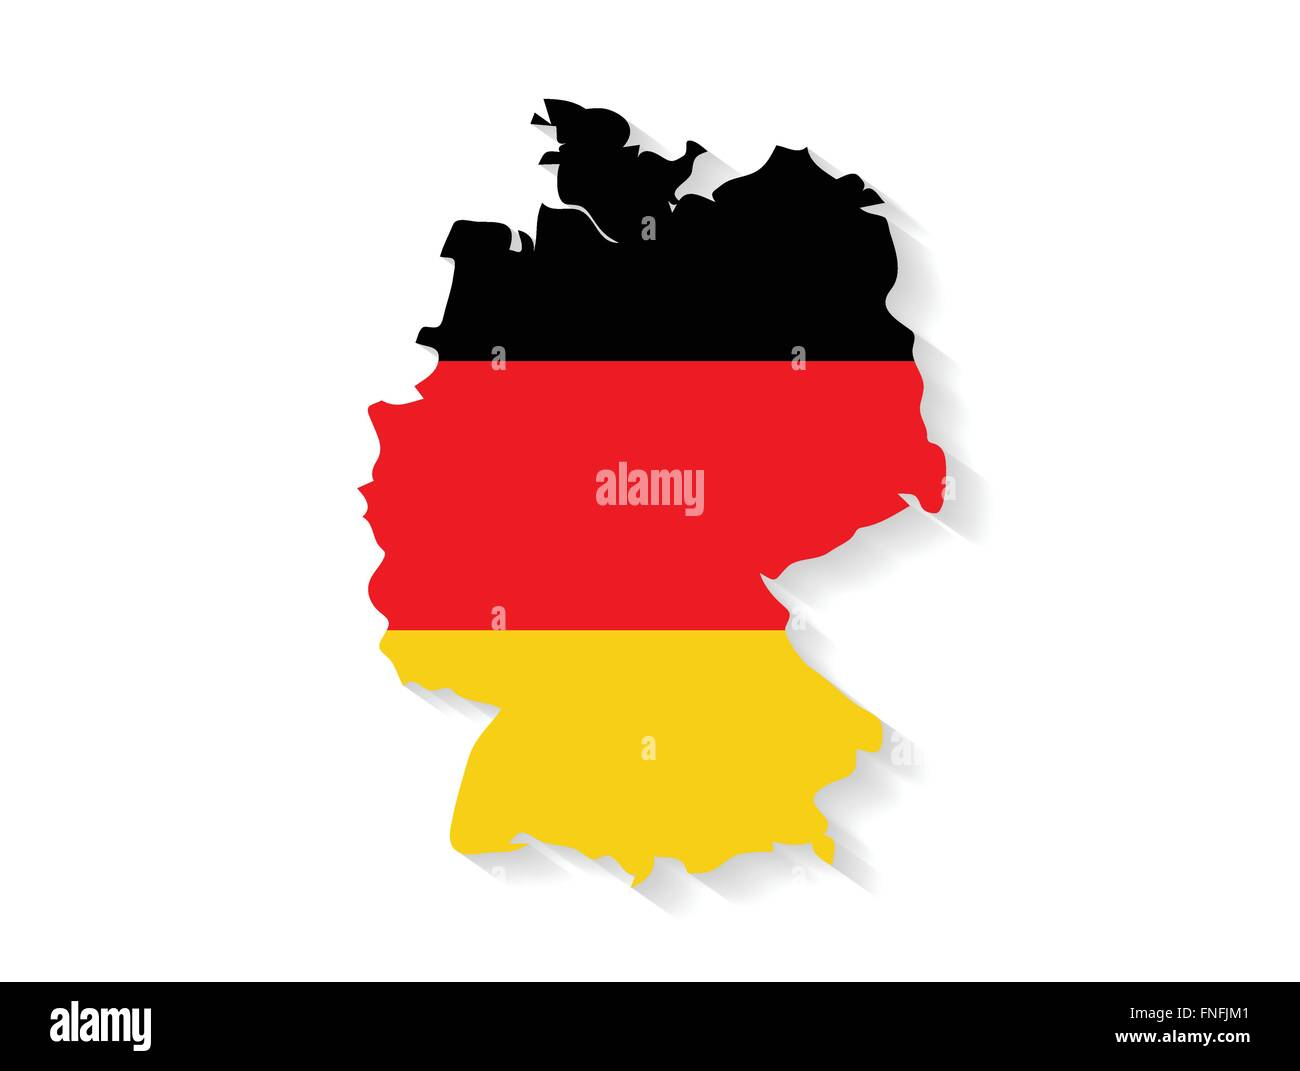 Country Of Germany Map.Germany Country Map With Flag And Shadow Effect Stock Vector Art